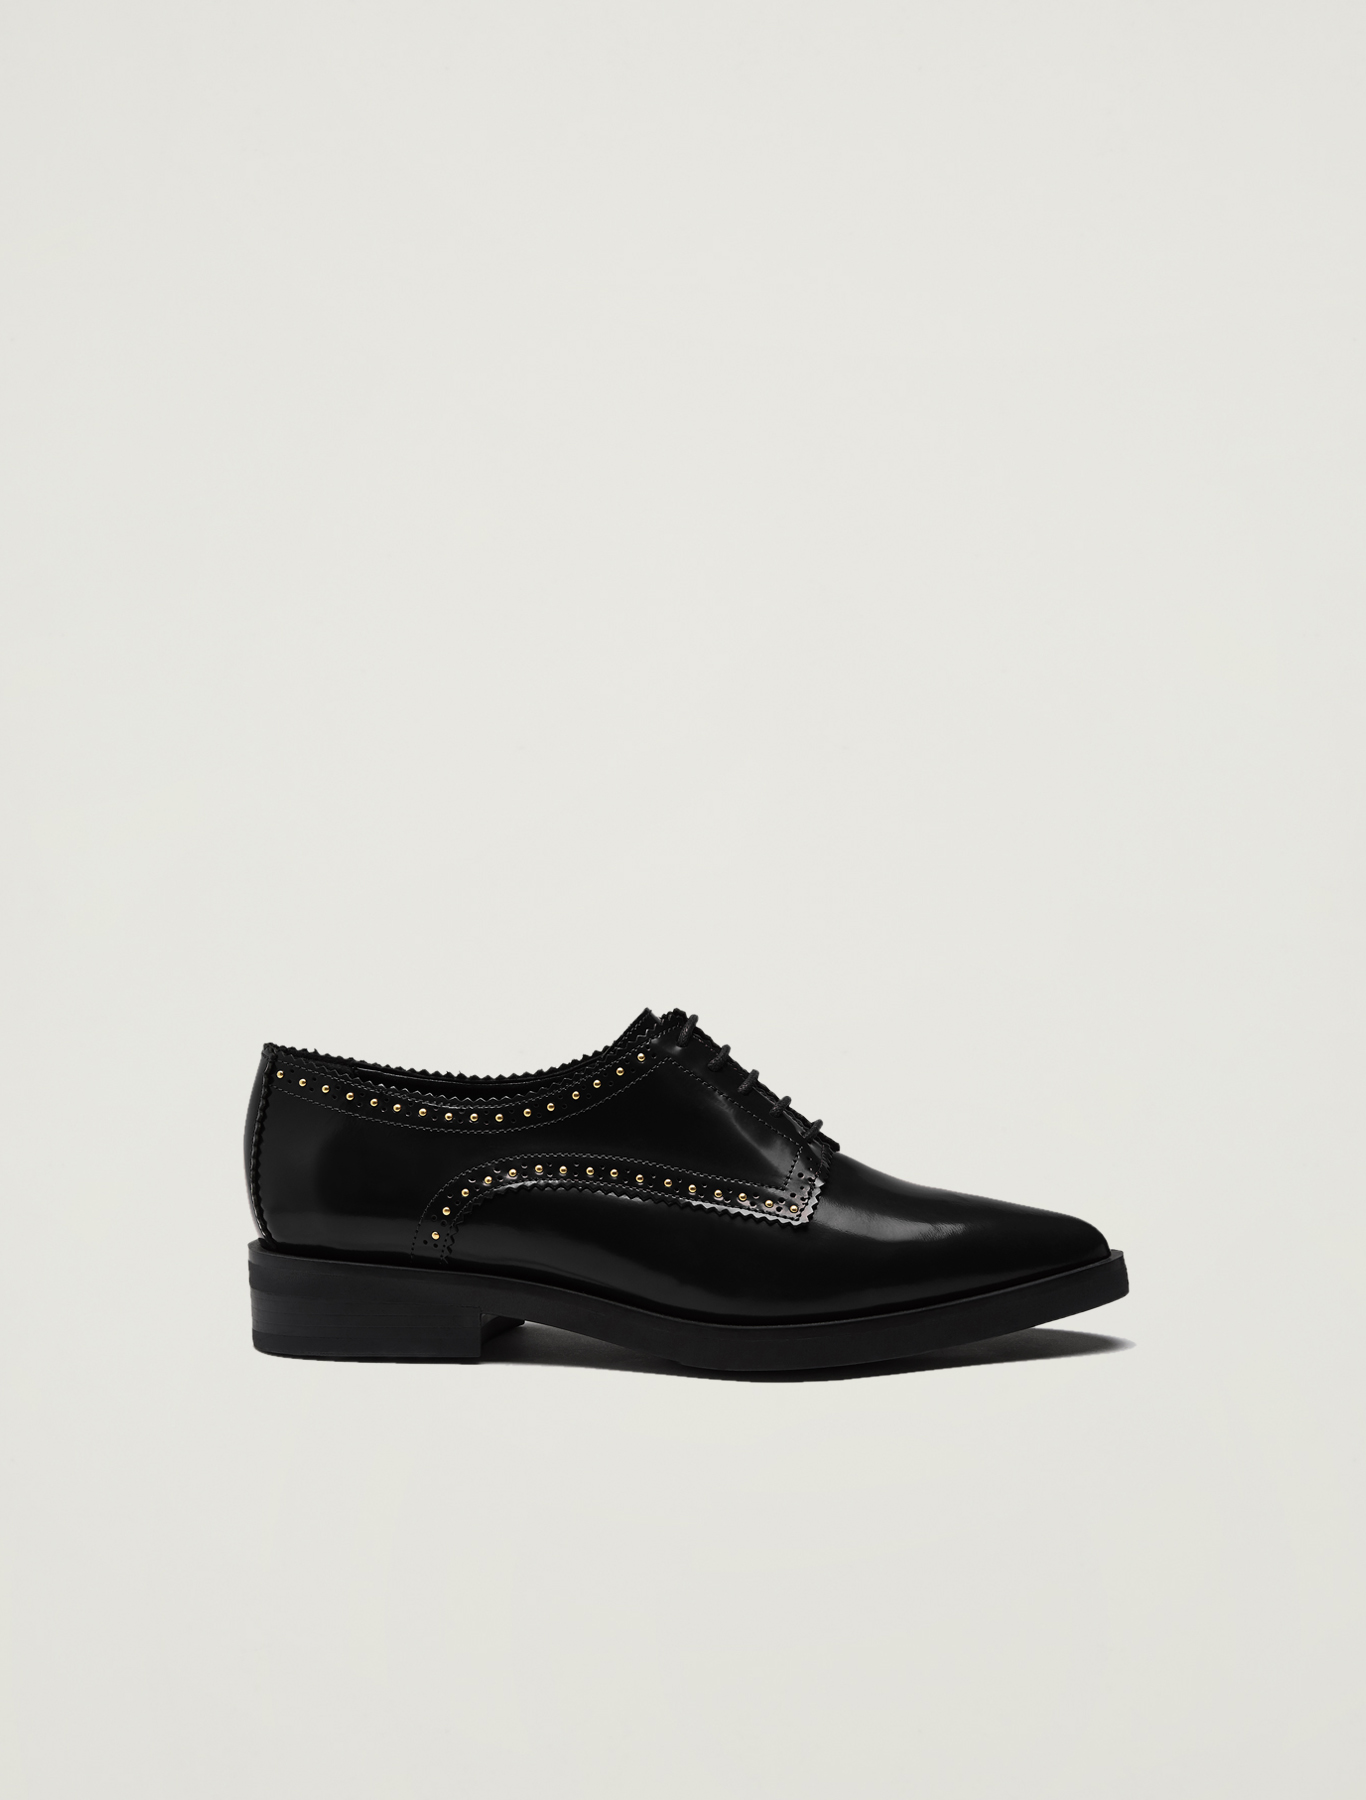 Lace-ups with micro studs - black - pennyblack